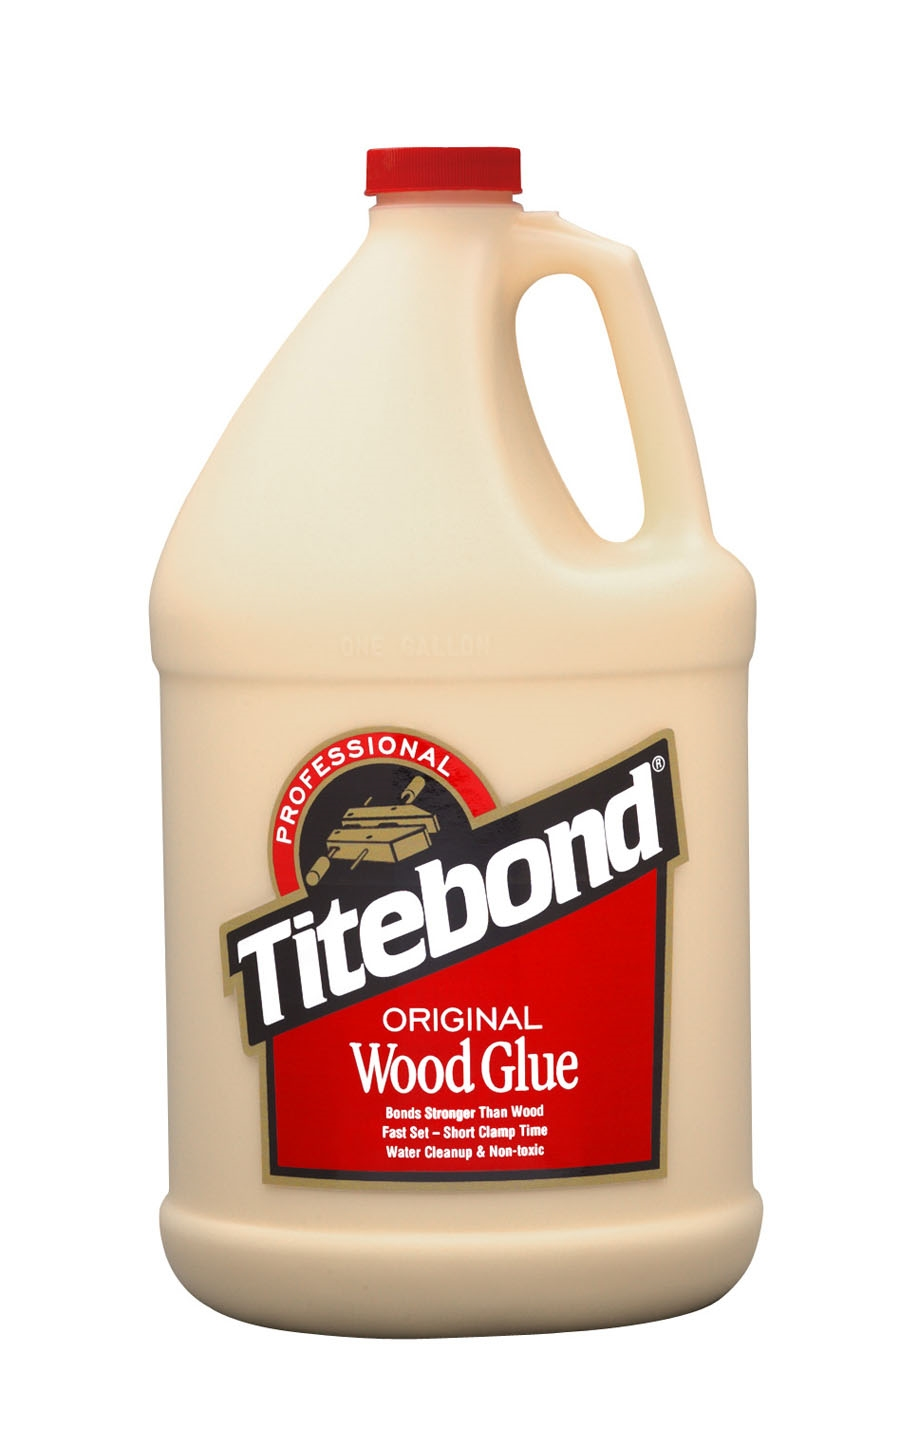 franklin titebond original wood glue. Black Bedroom Furniture Sets. Home Design Ideas